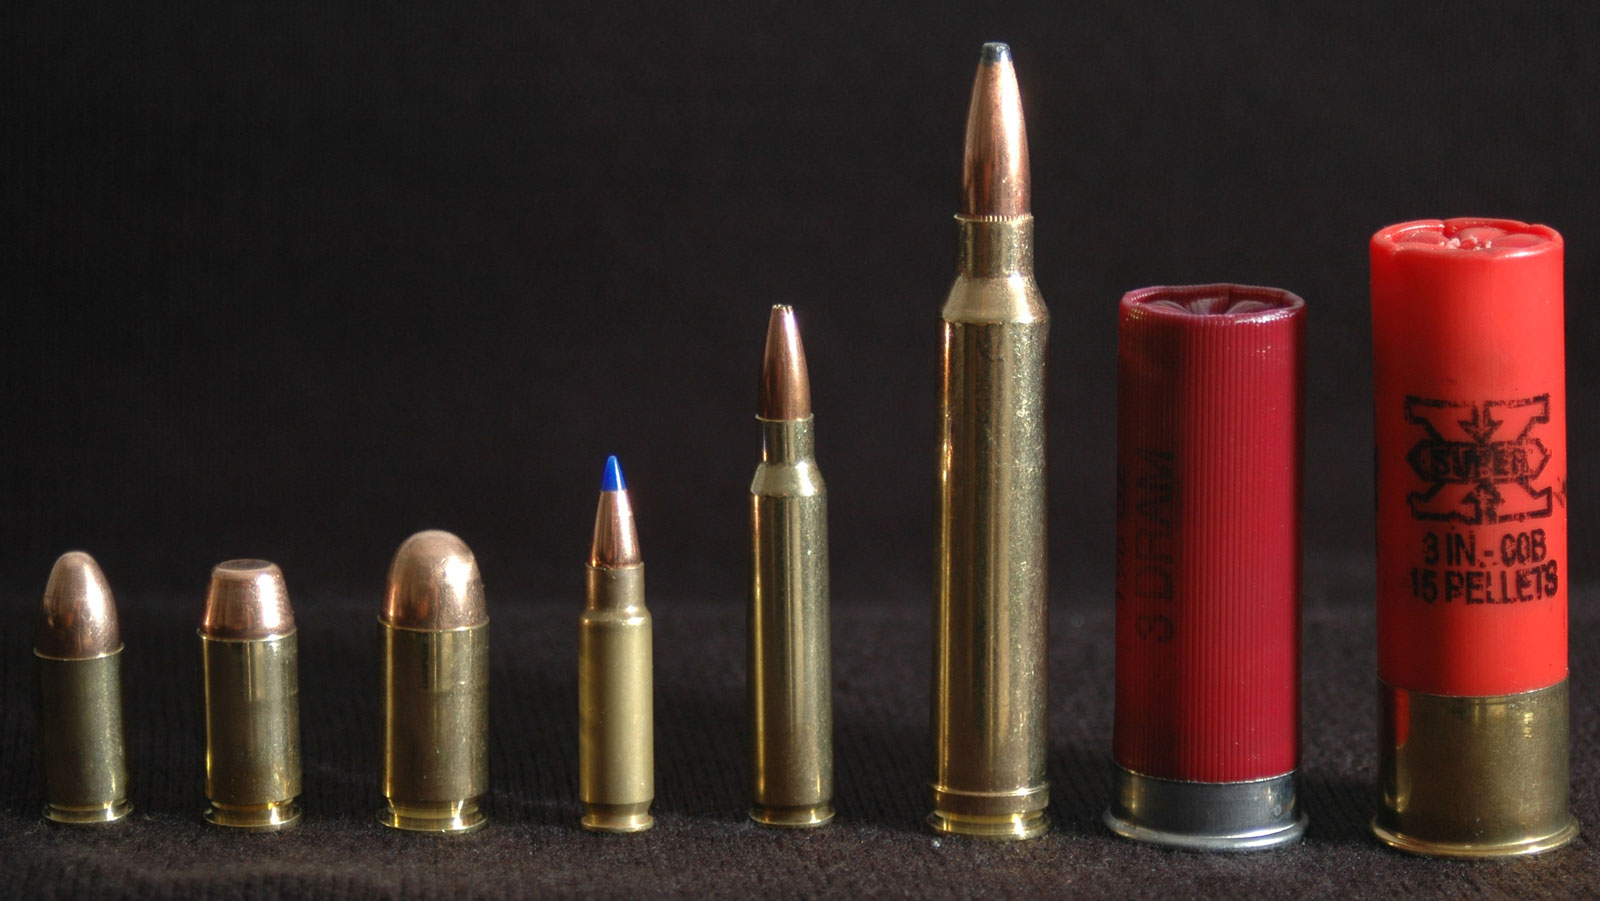 <h1>5 Crucial Ammo Storage Tips For SHTF</h1>